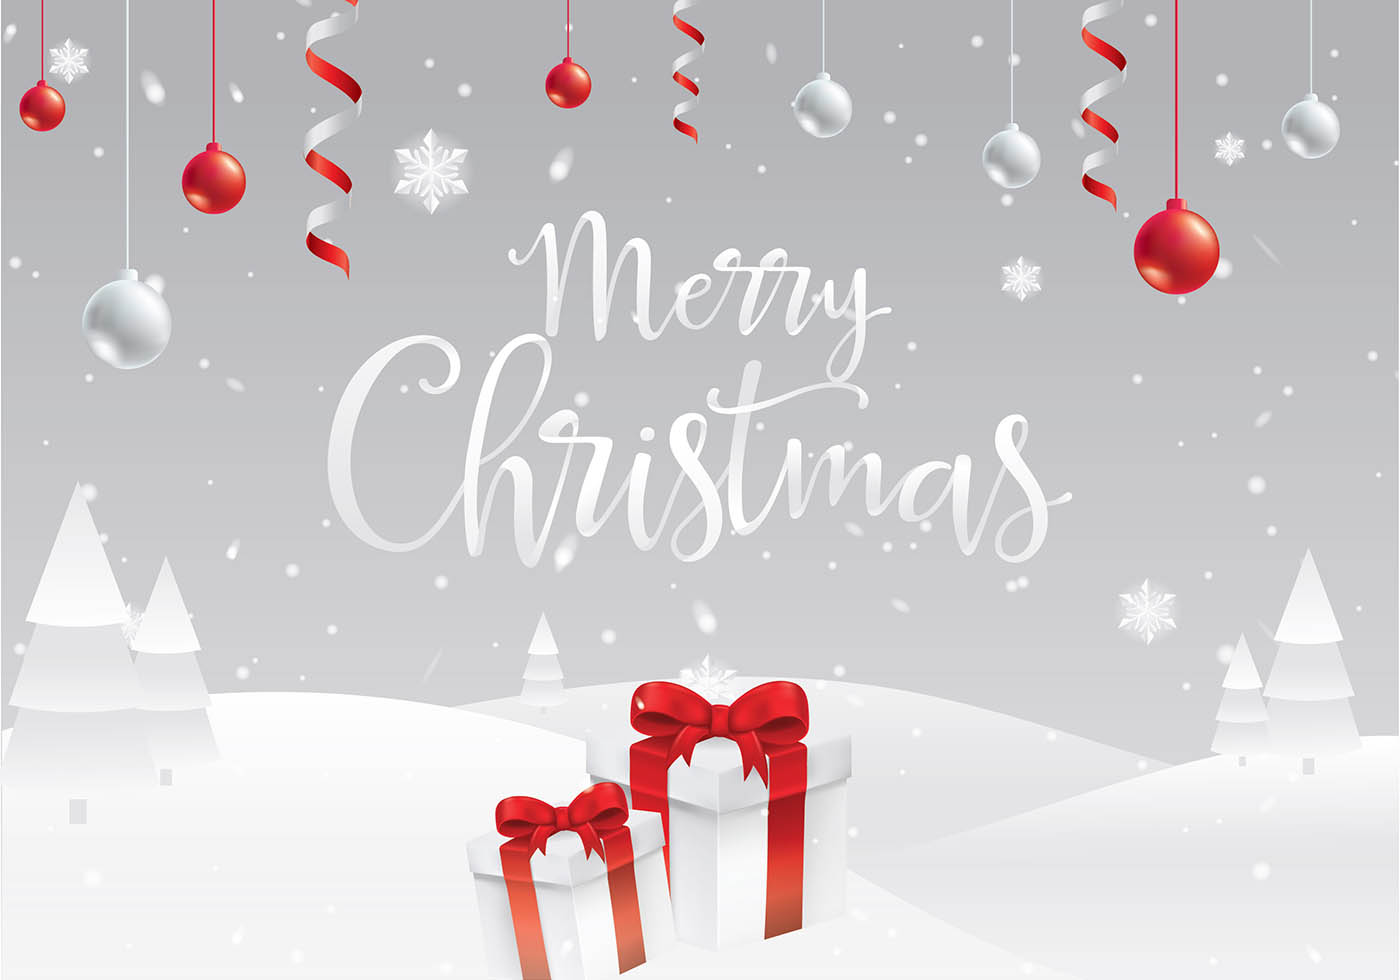 White Christmas Background.White Christmas Background Free Vector Art 3 980 Free